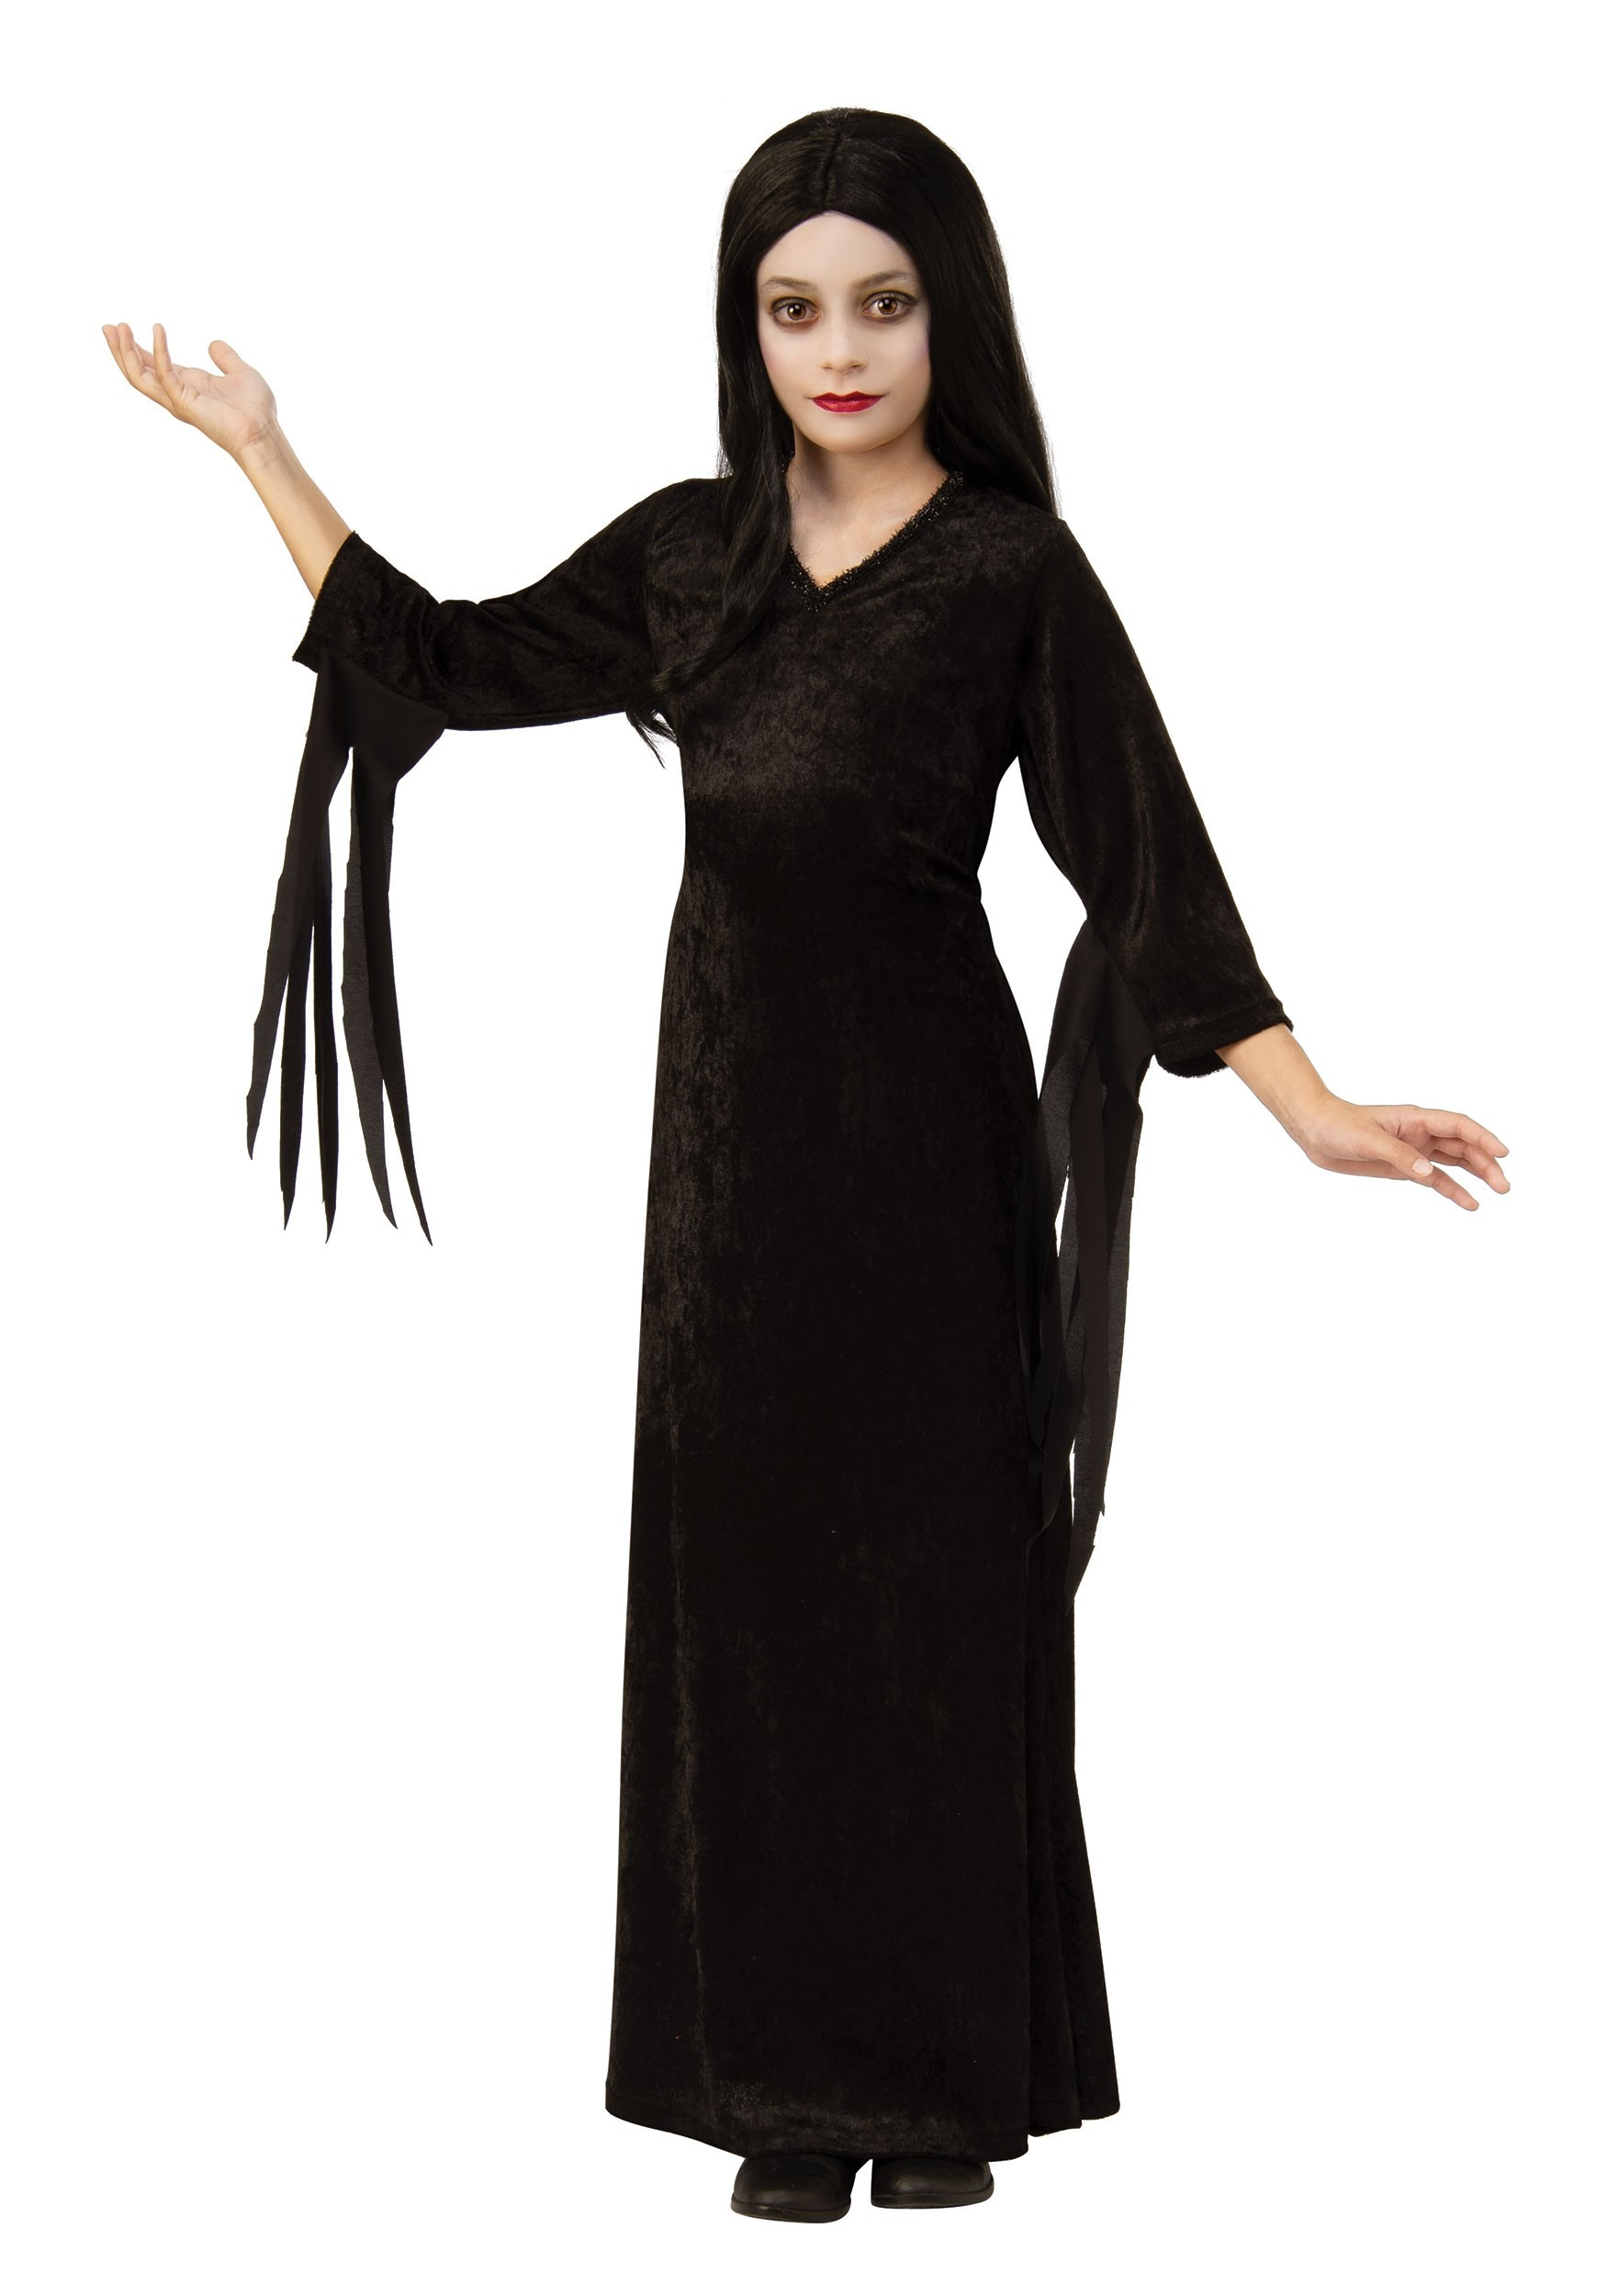 The Addams Family Morticia Costume for Kids